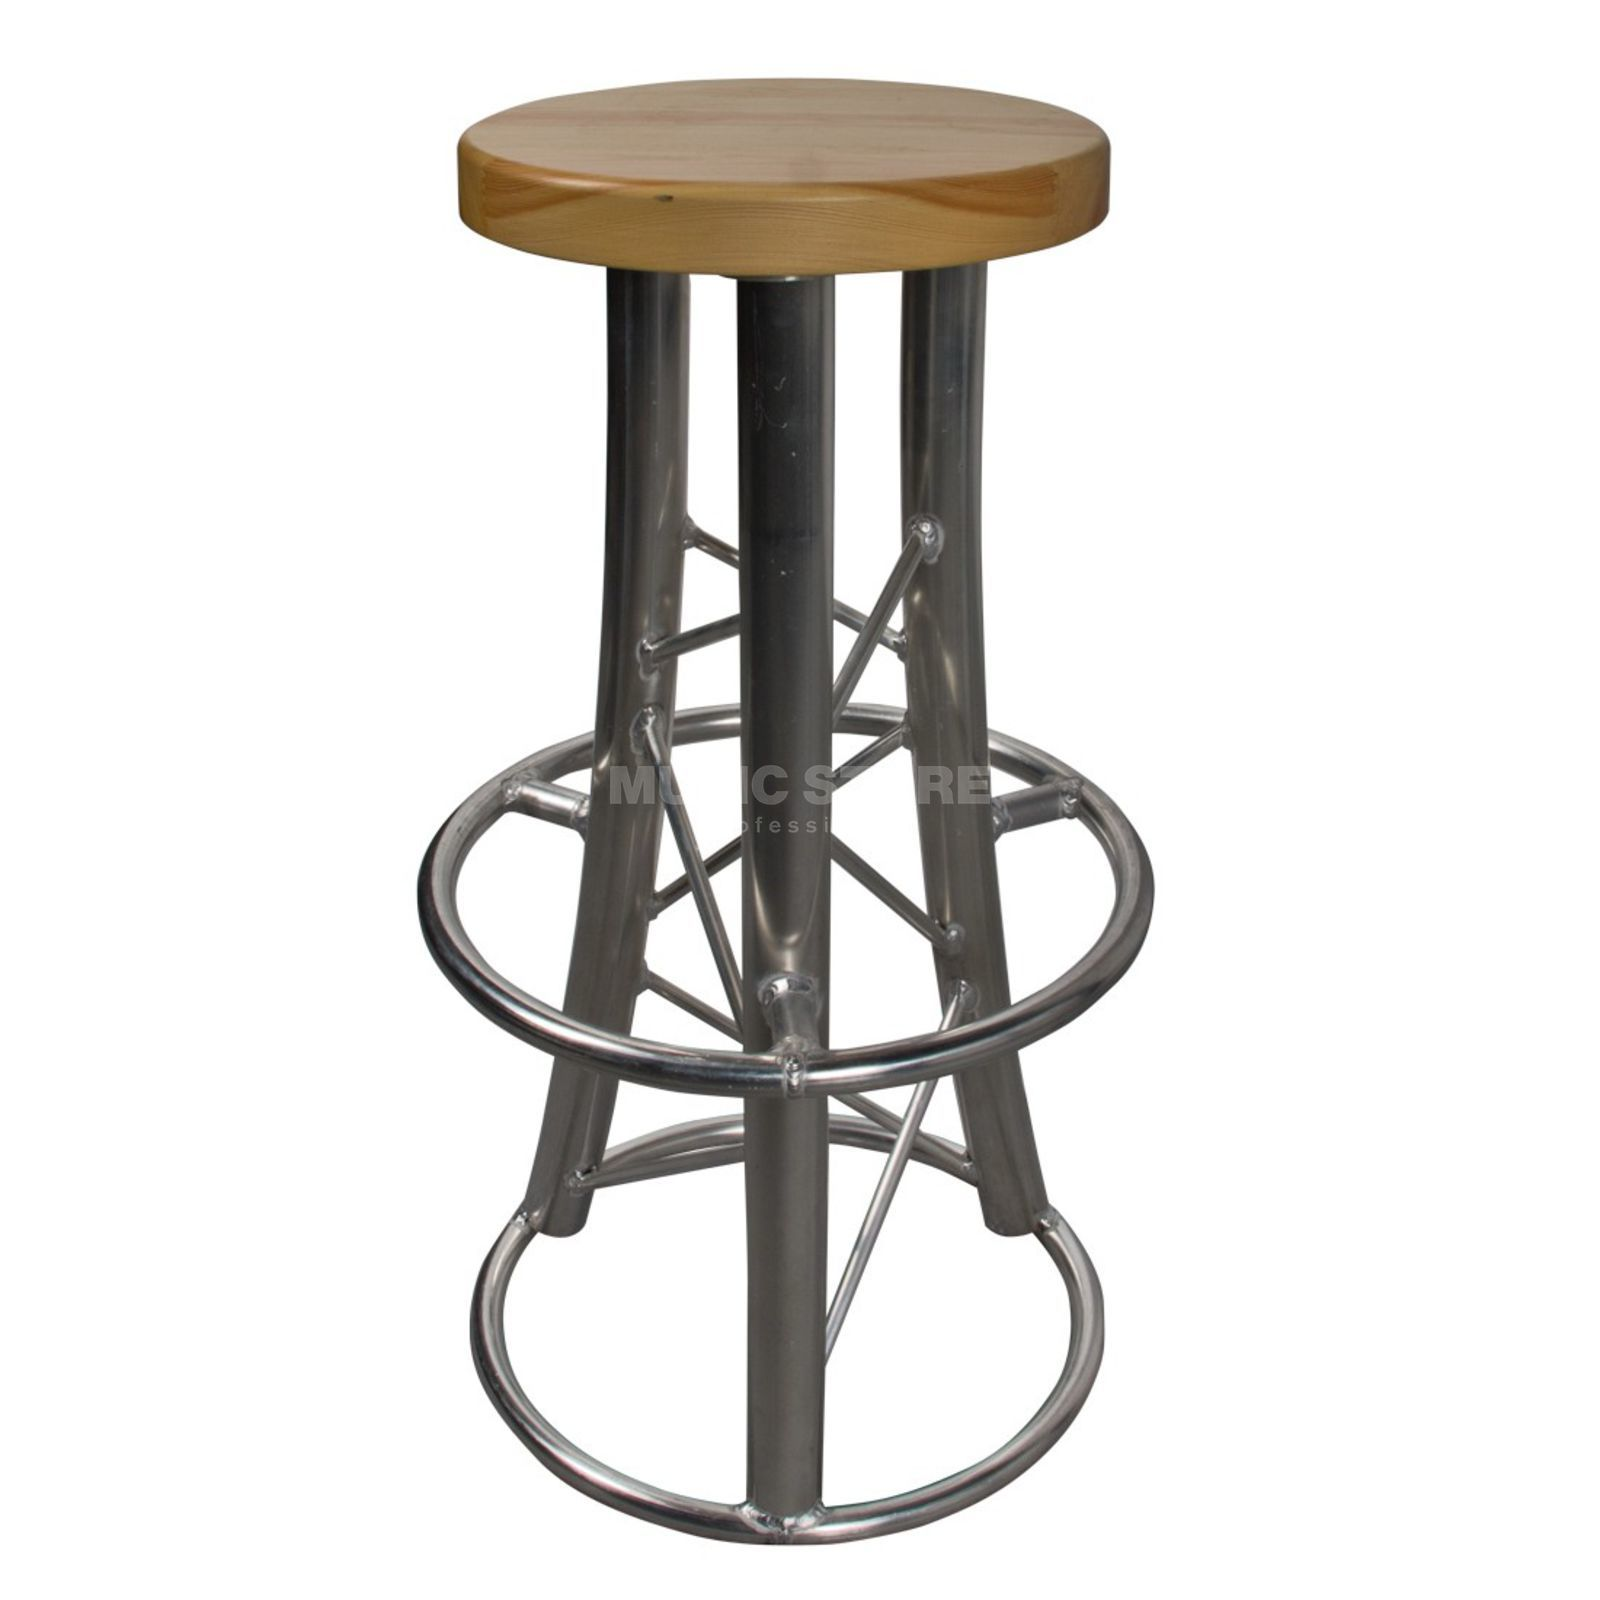 DURATRUSS Stool 2 Traversen-Barhocker Produktbild